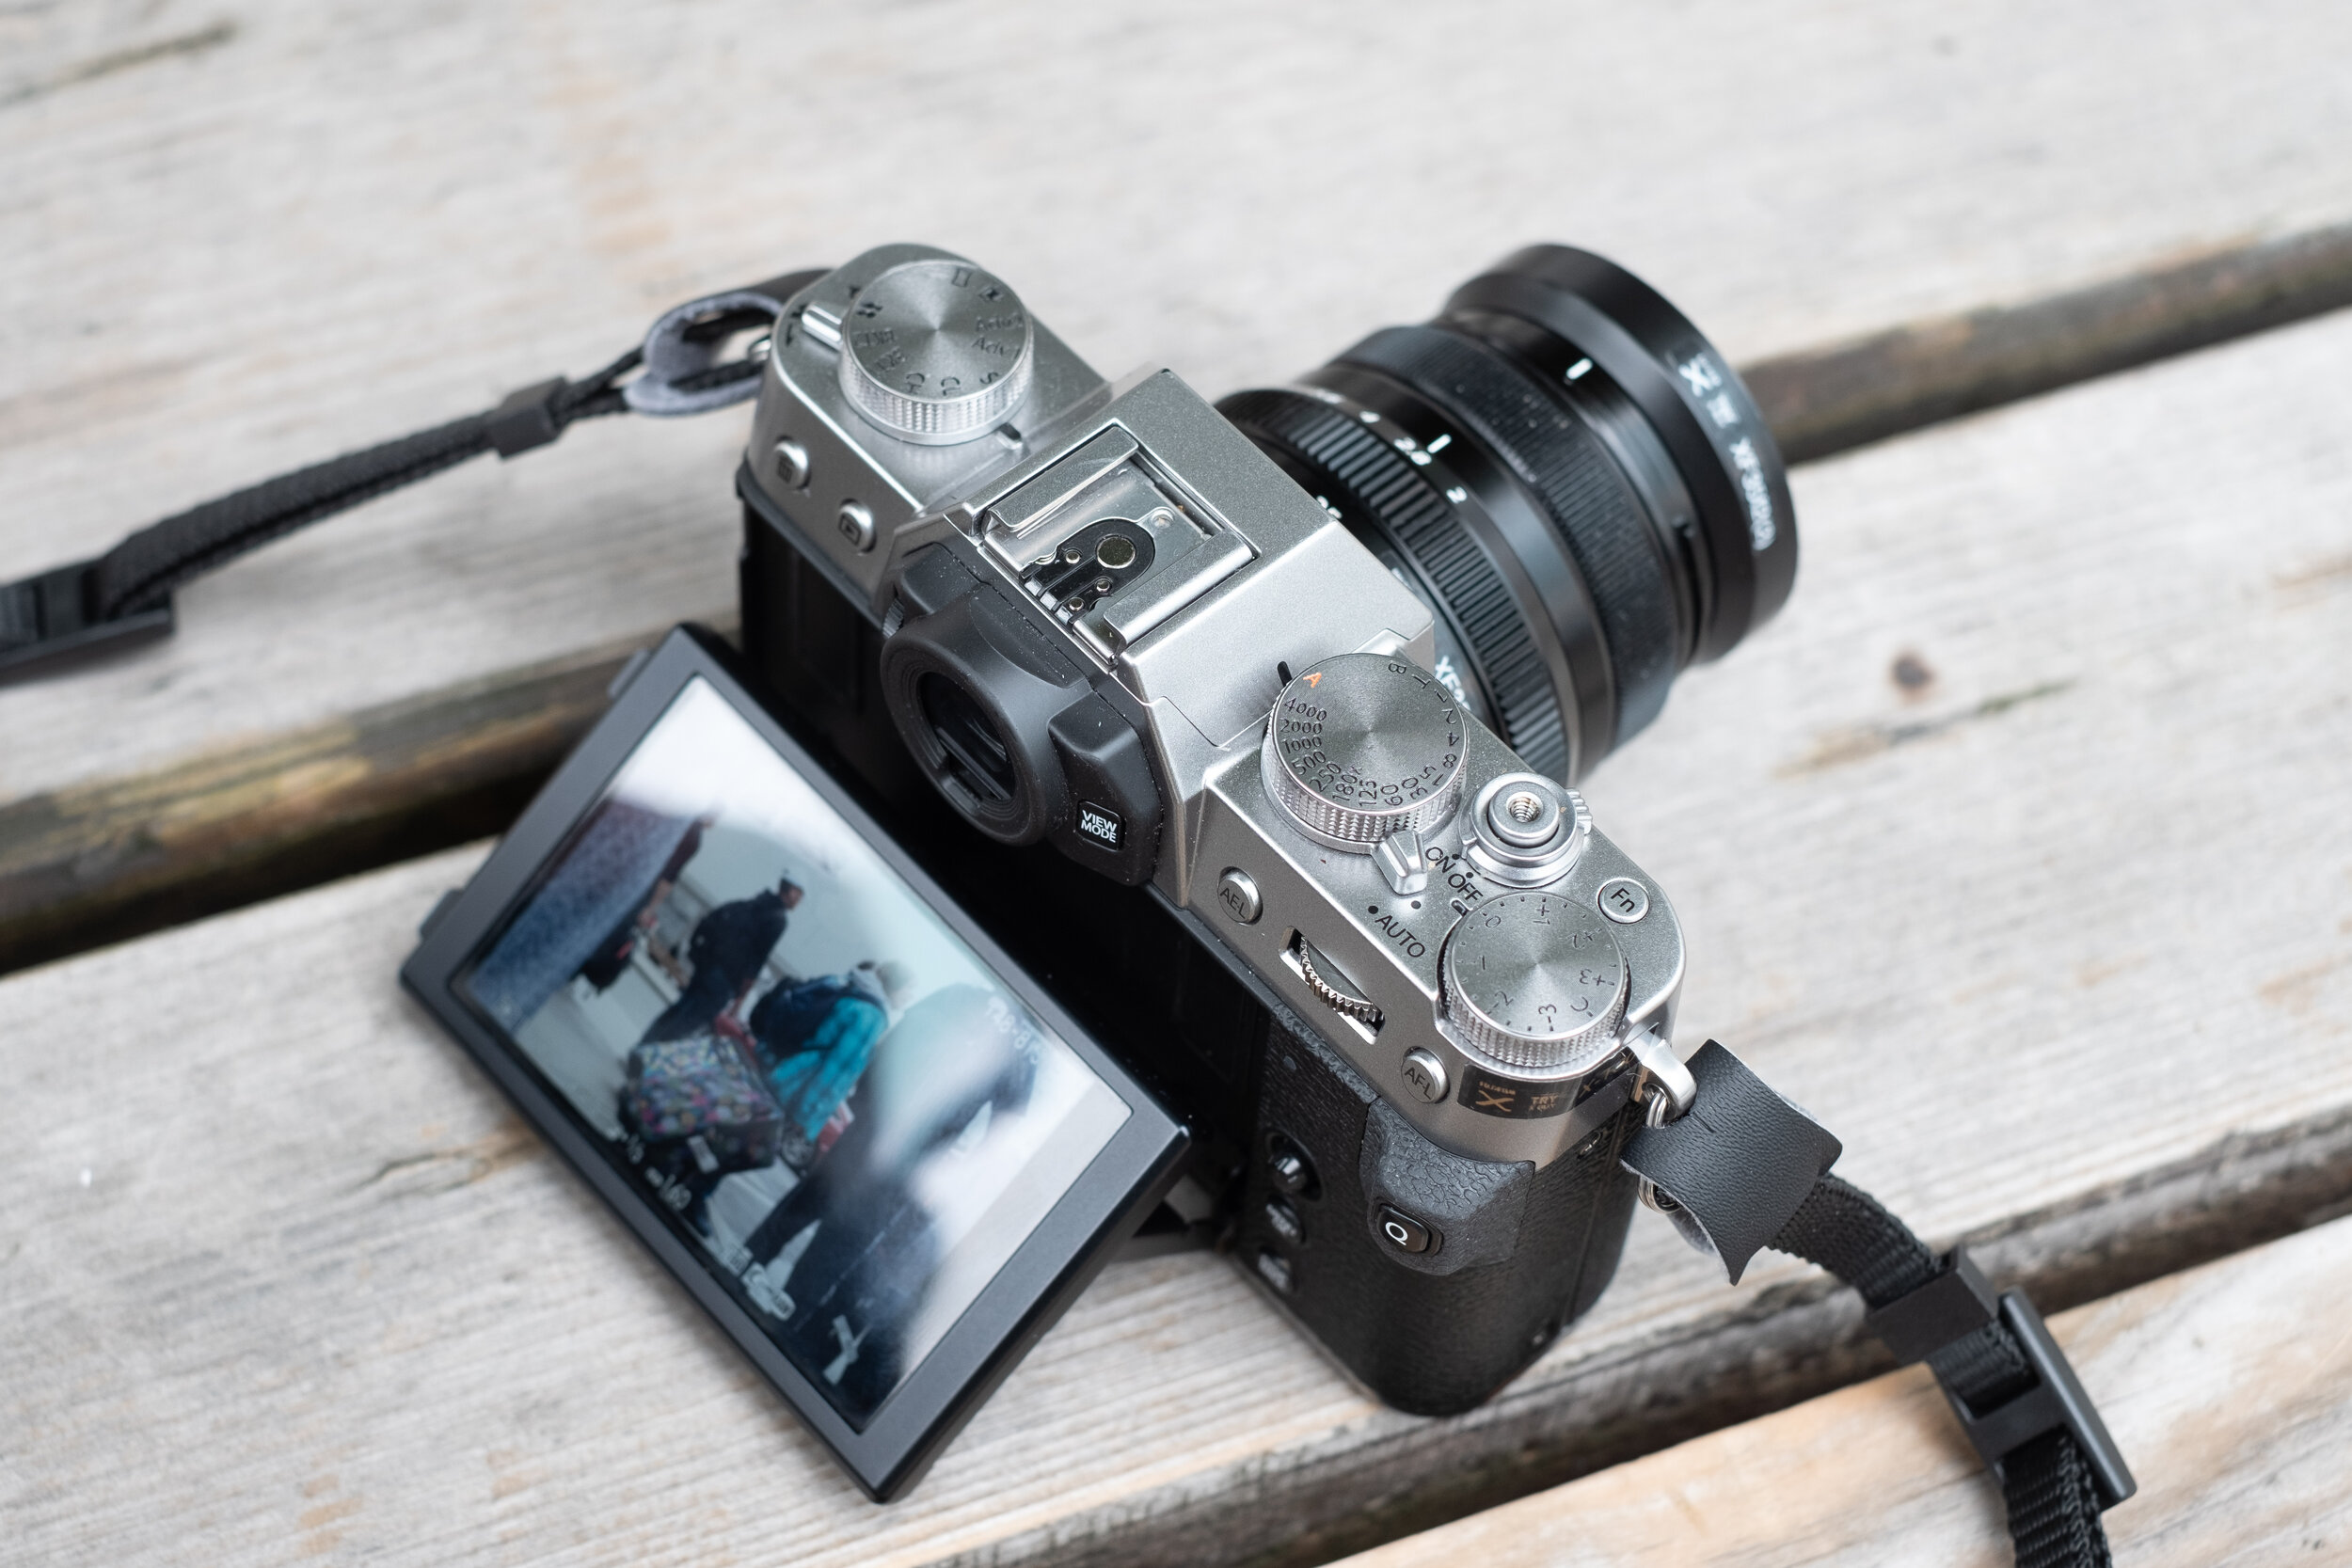 Fujifilm X-T30 with XF 35mm f/2 R showing the articulating screen